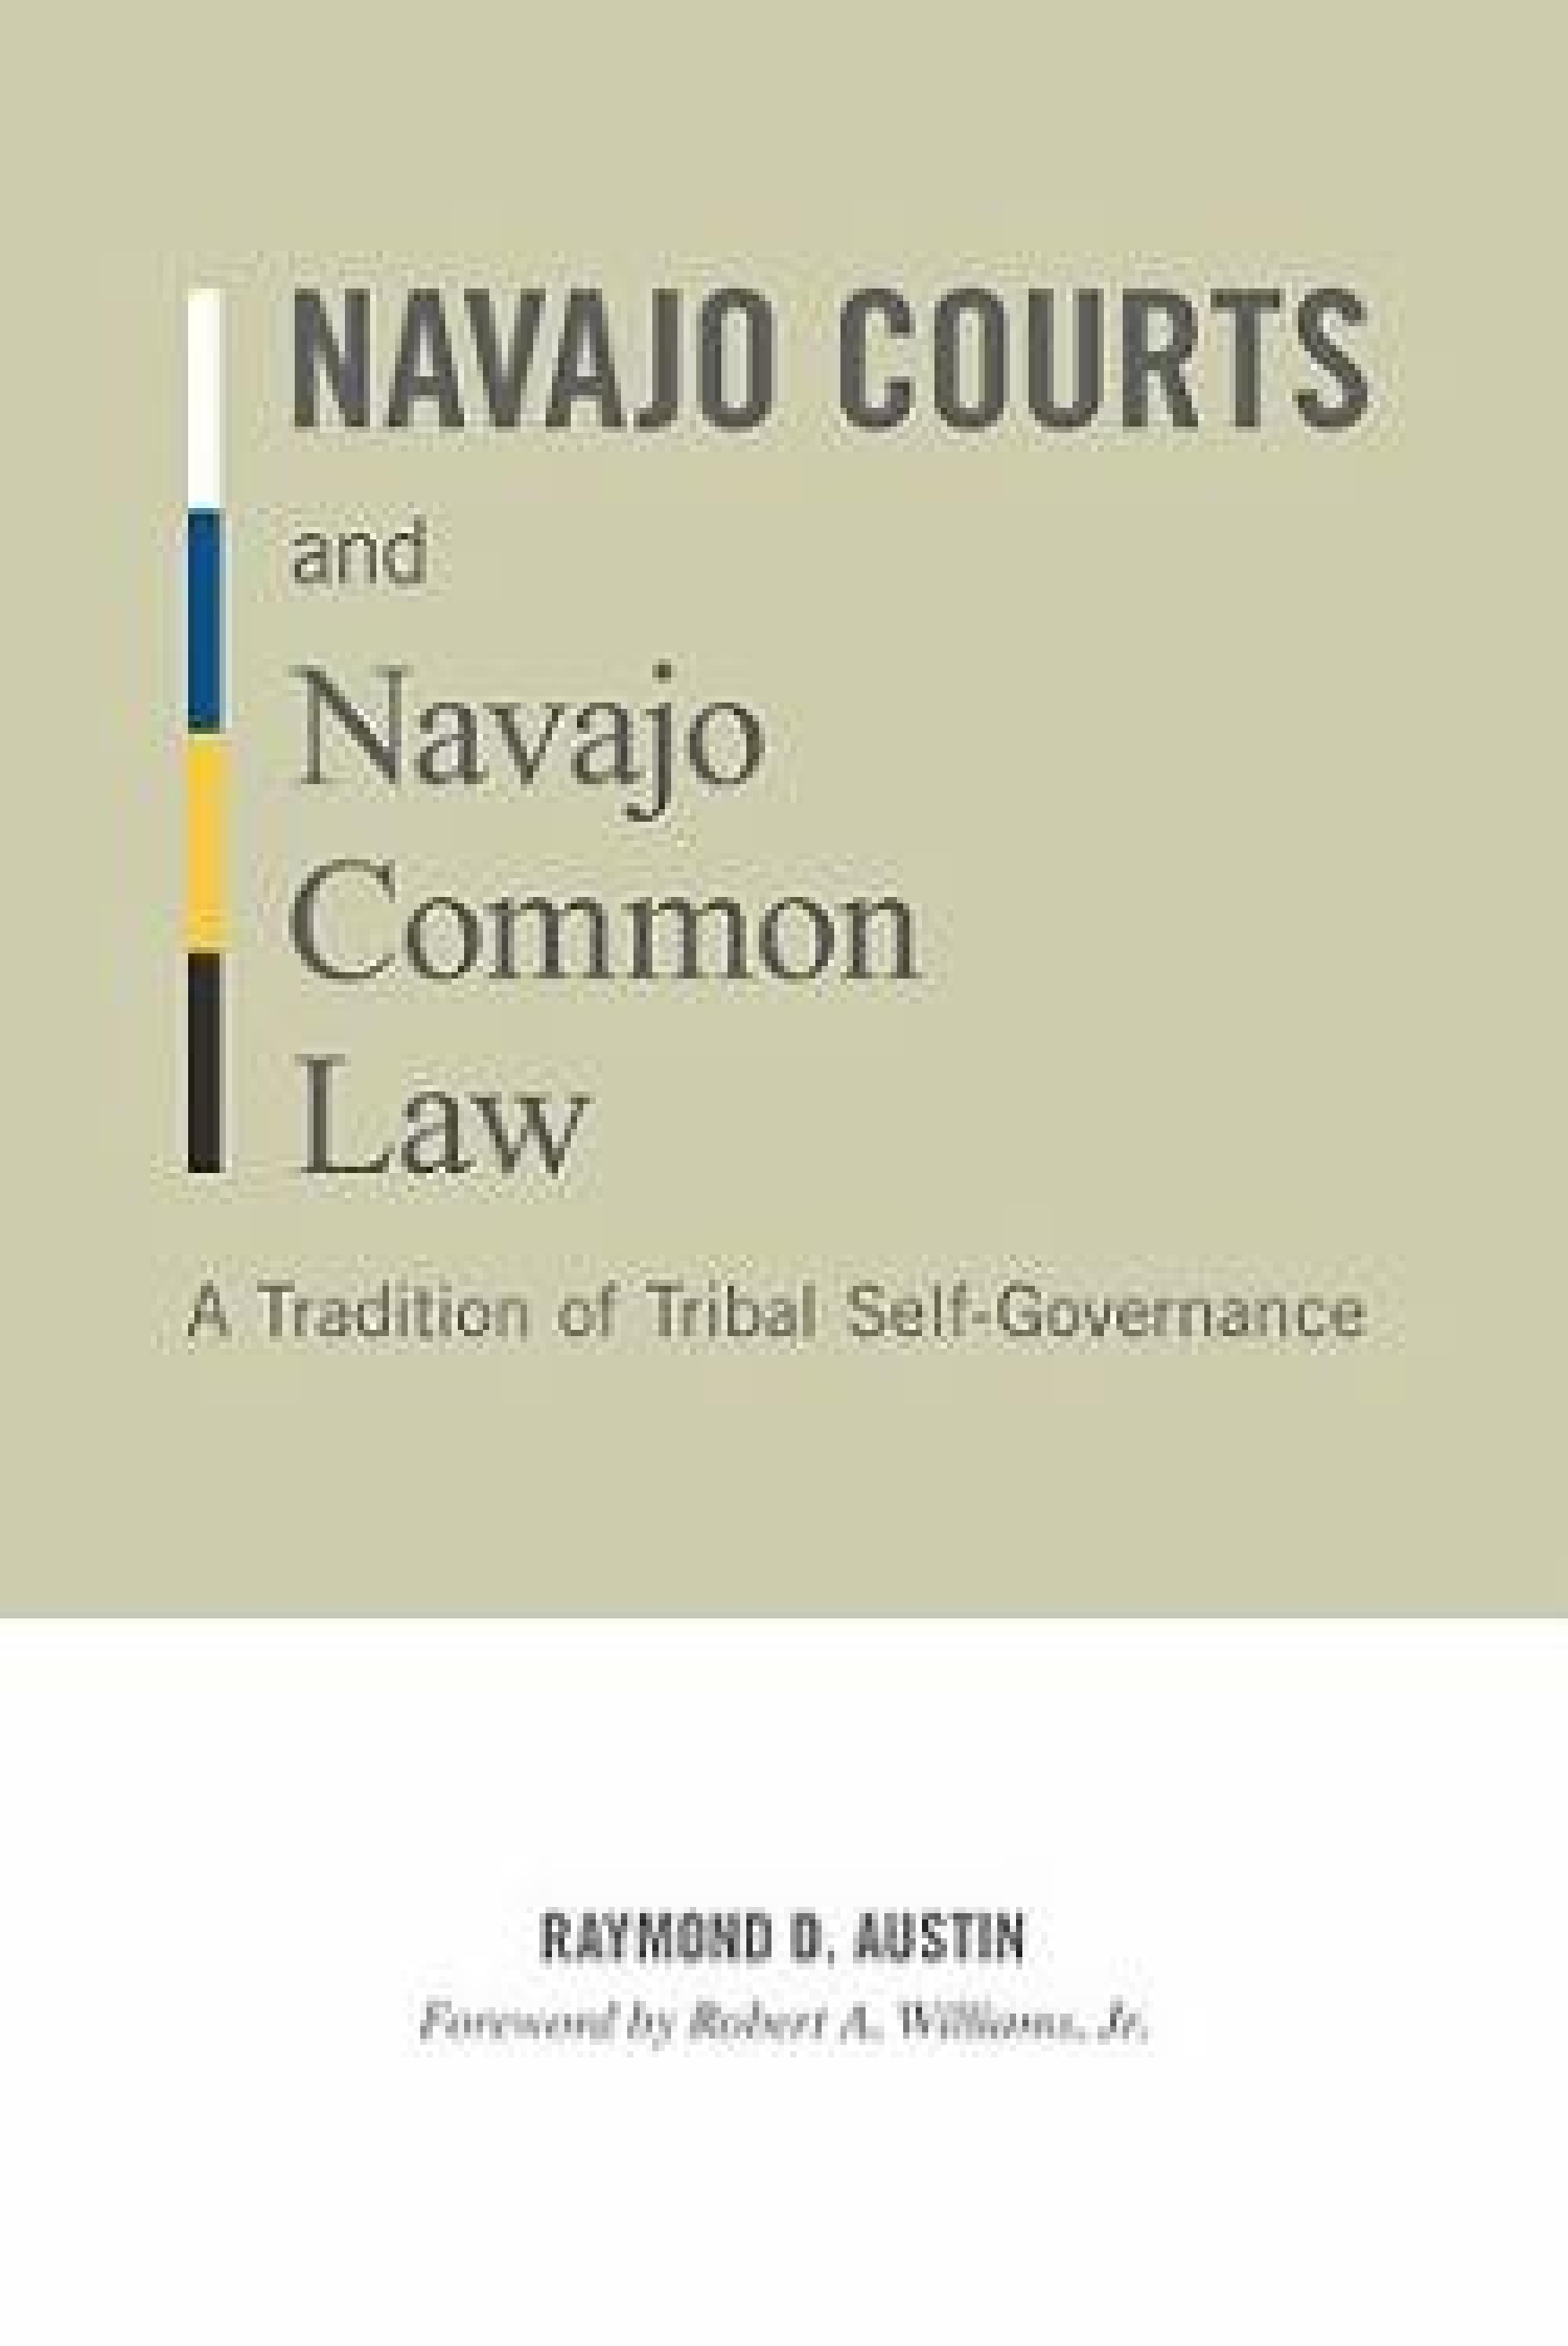 The Navajo Nation's court system is among the largest and most established tribal legal systems in the world, said Raymond D. Austin, yet few texts offer a comprehensive understand in the courts, or the customs they follow. His book is an attempt to intro